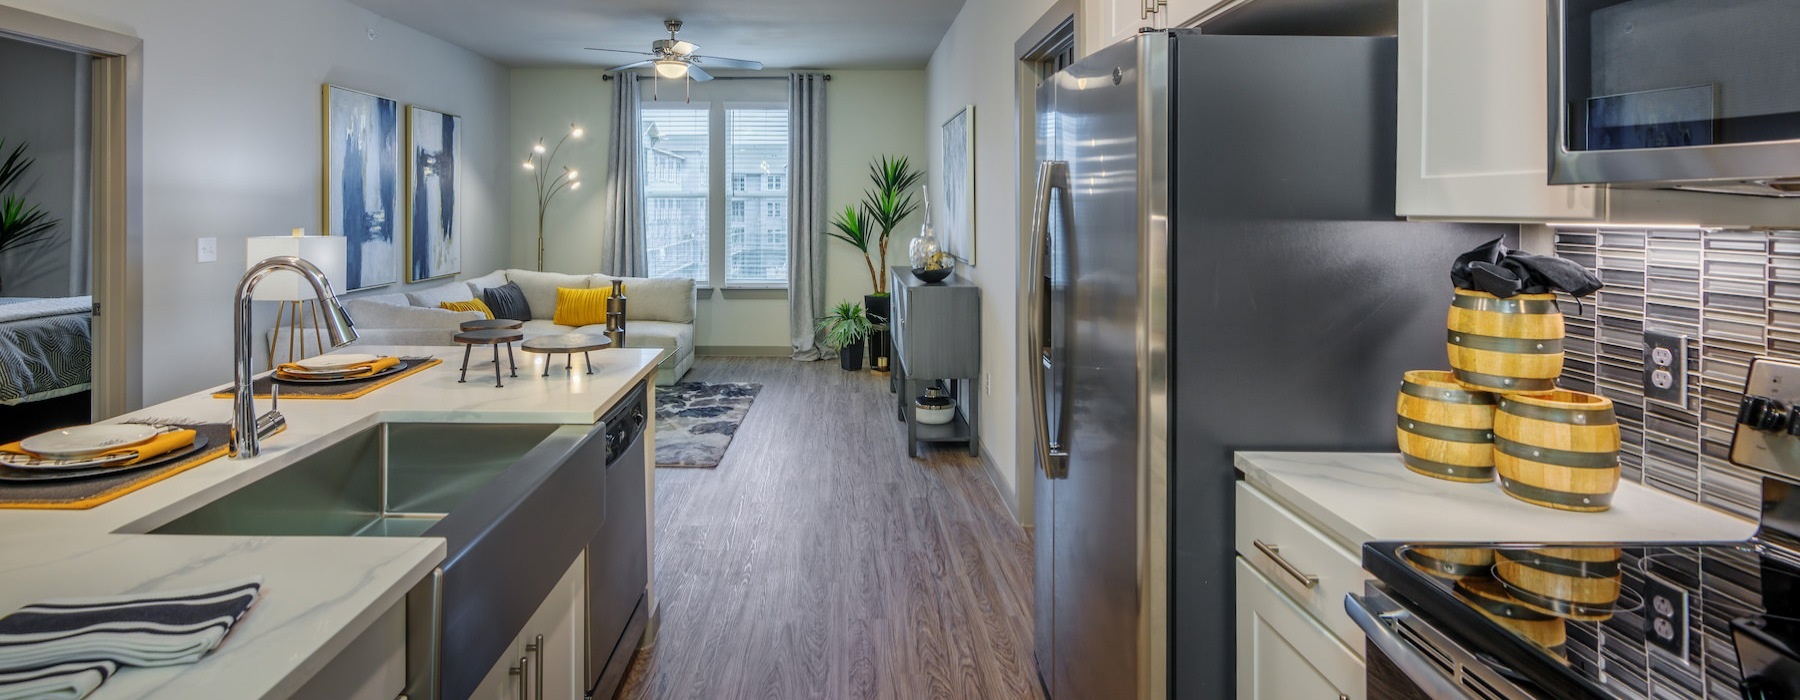 Model unit at Radius West showing the kitchen and living room all comfortably furnished